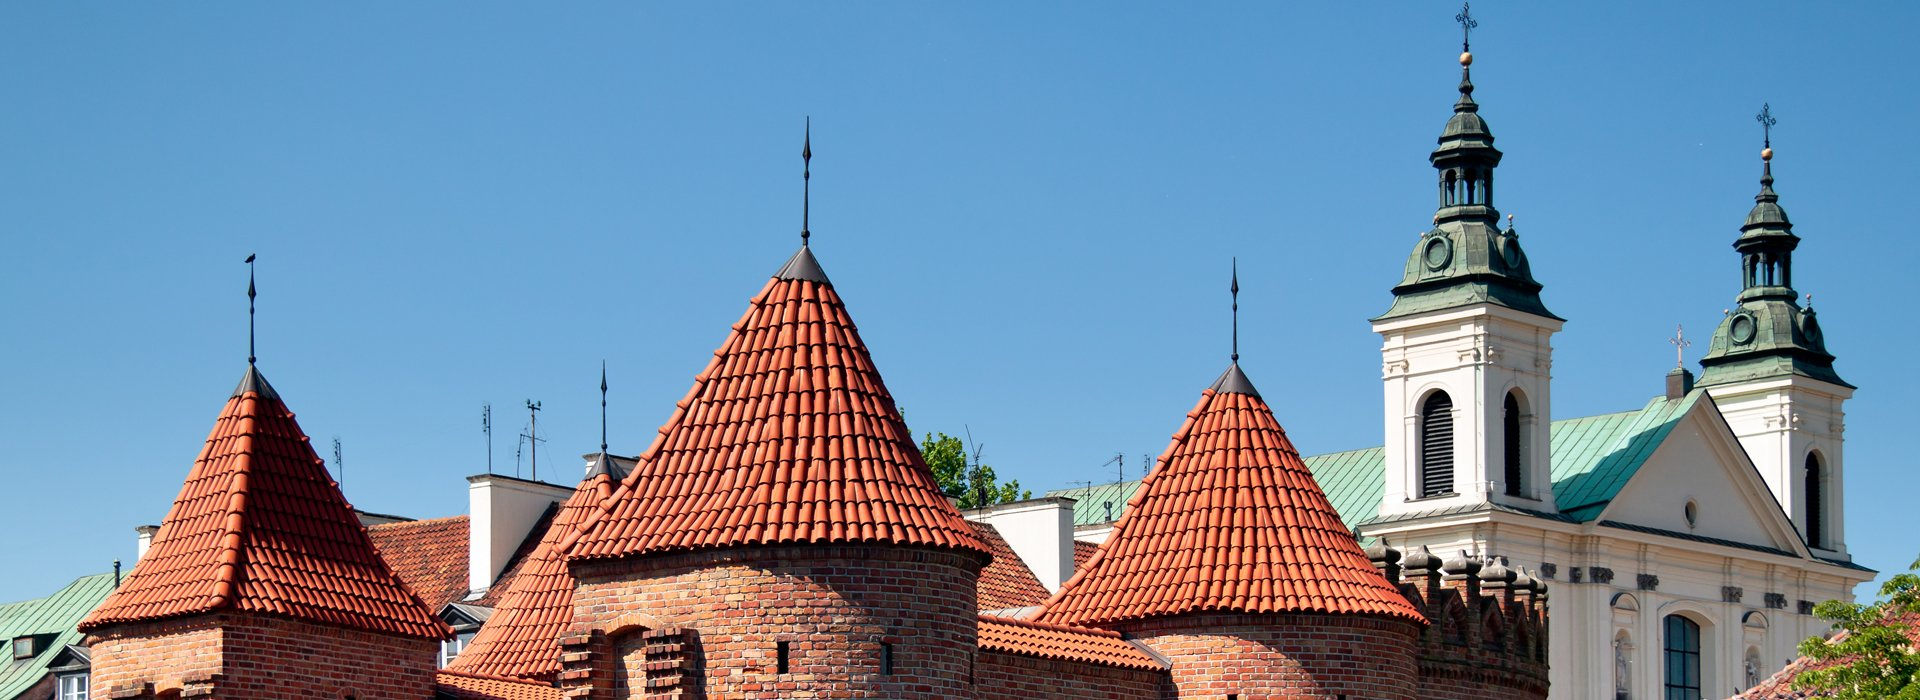 Glorious old roofs in the Old Town in Warsaw